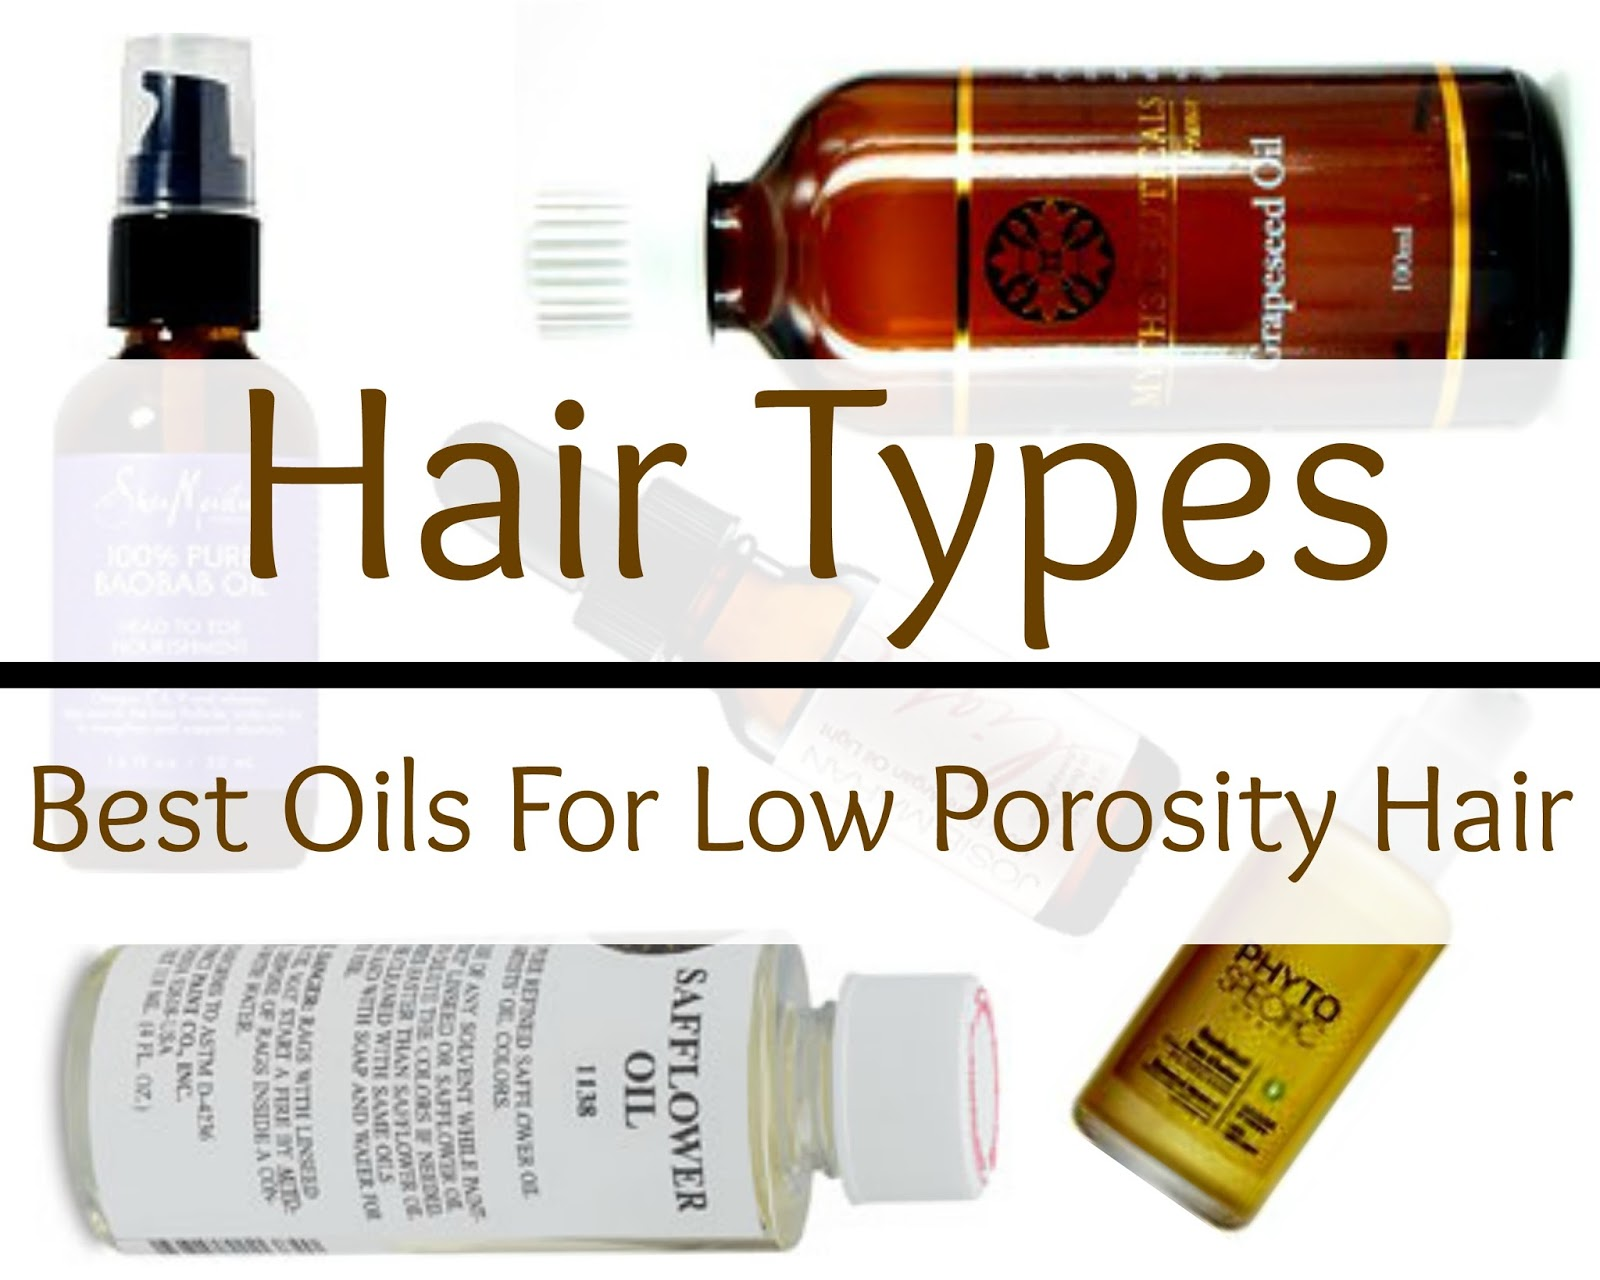 Click here to buy Phytospecific Baobab Oil, a great oil for low porosity hair